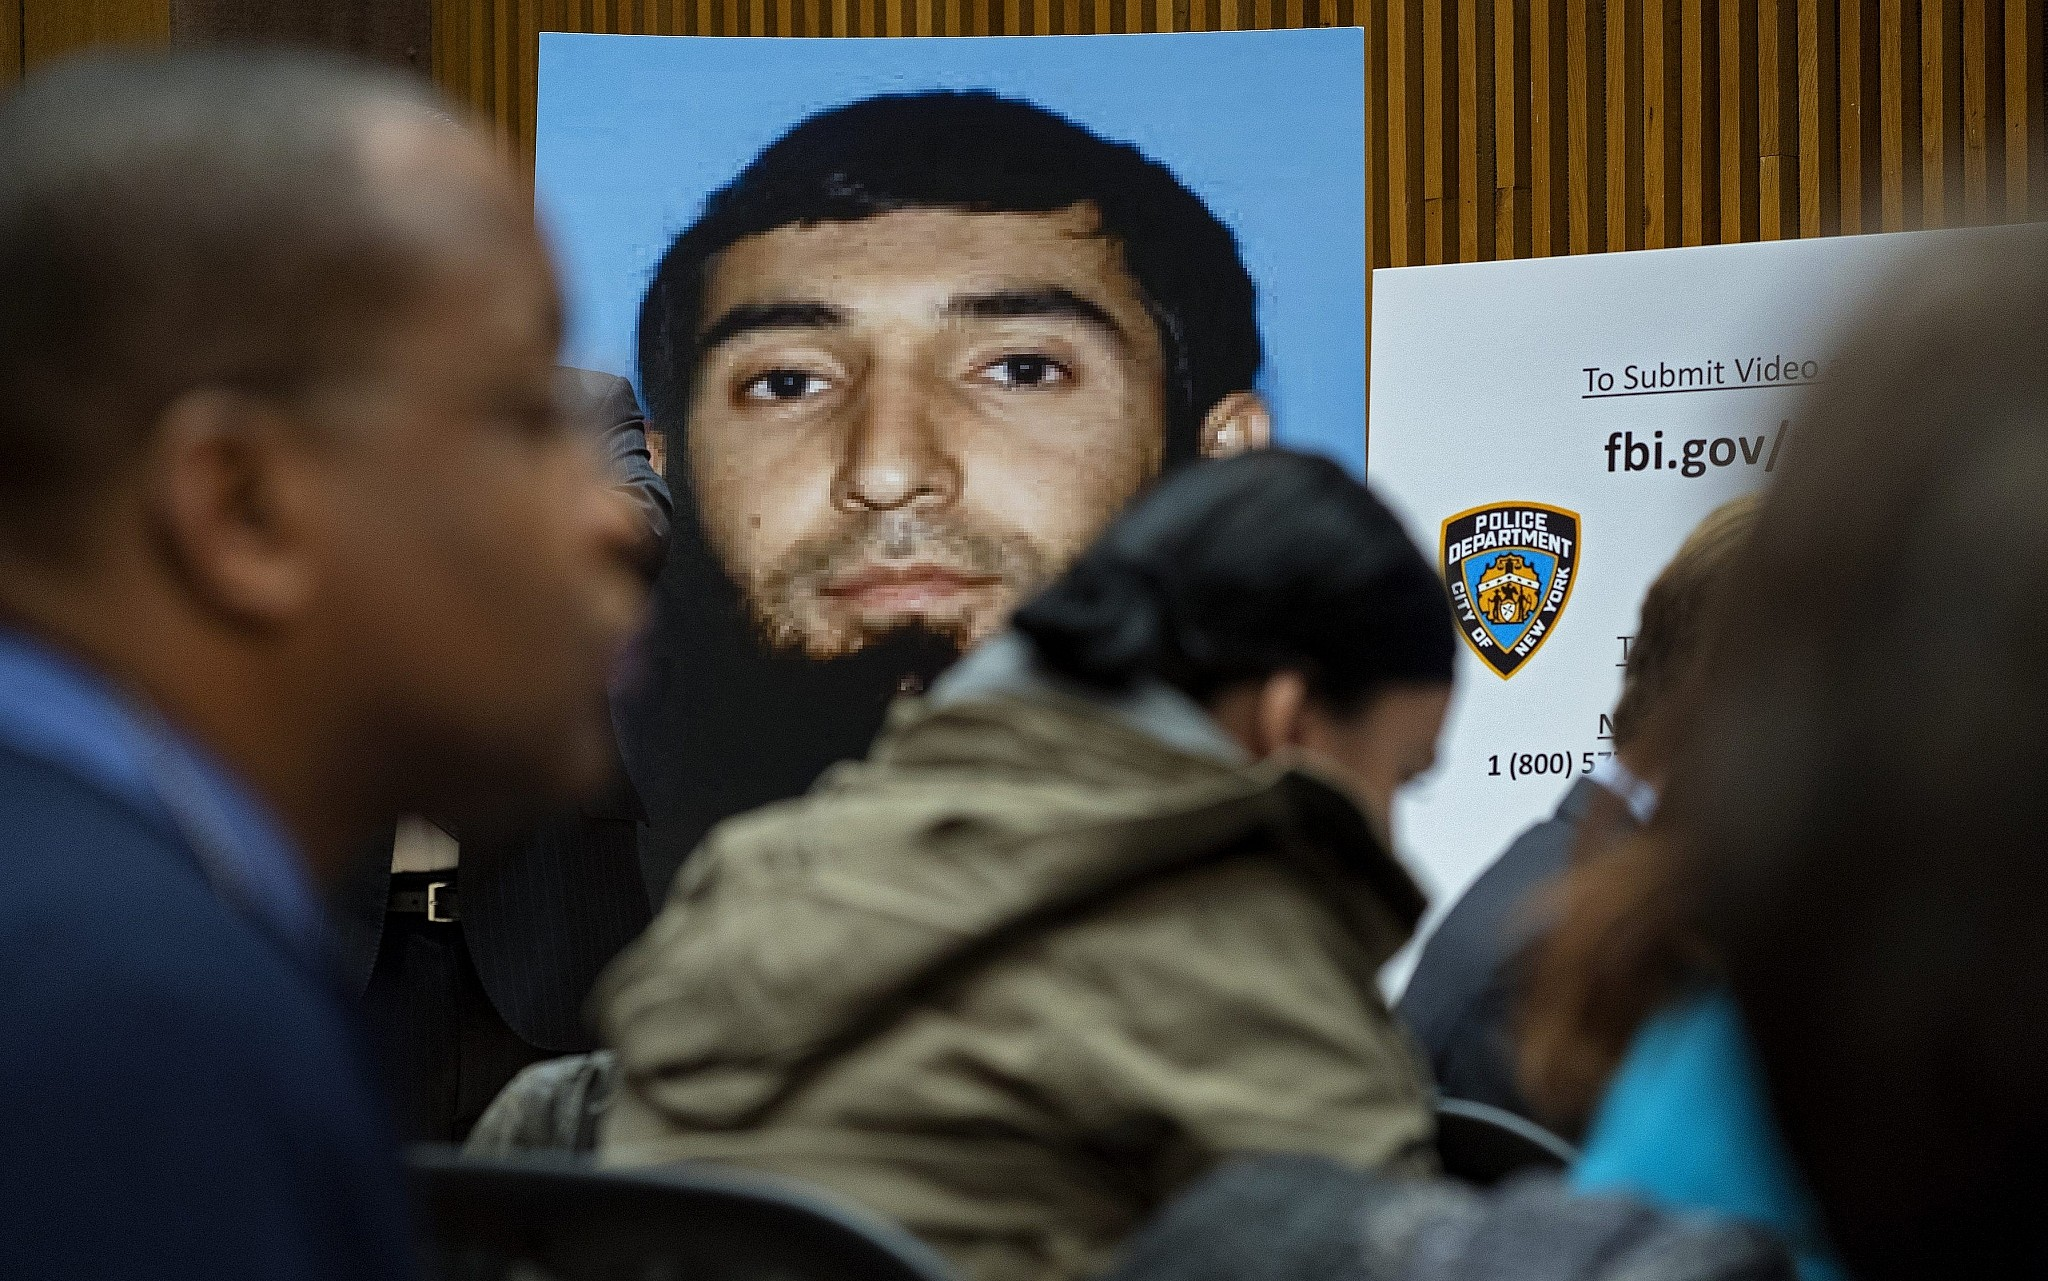 NY truck attack suspect indicted on terrorism, murder charges